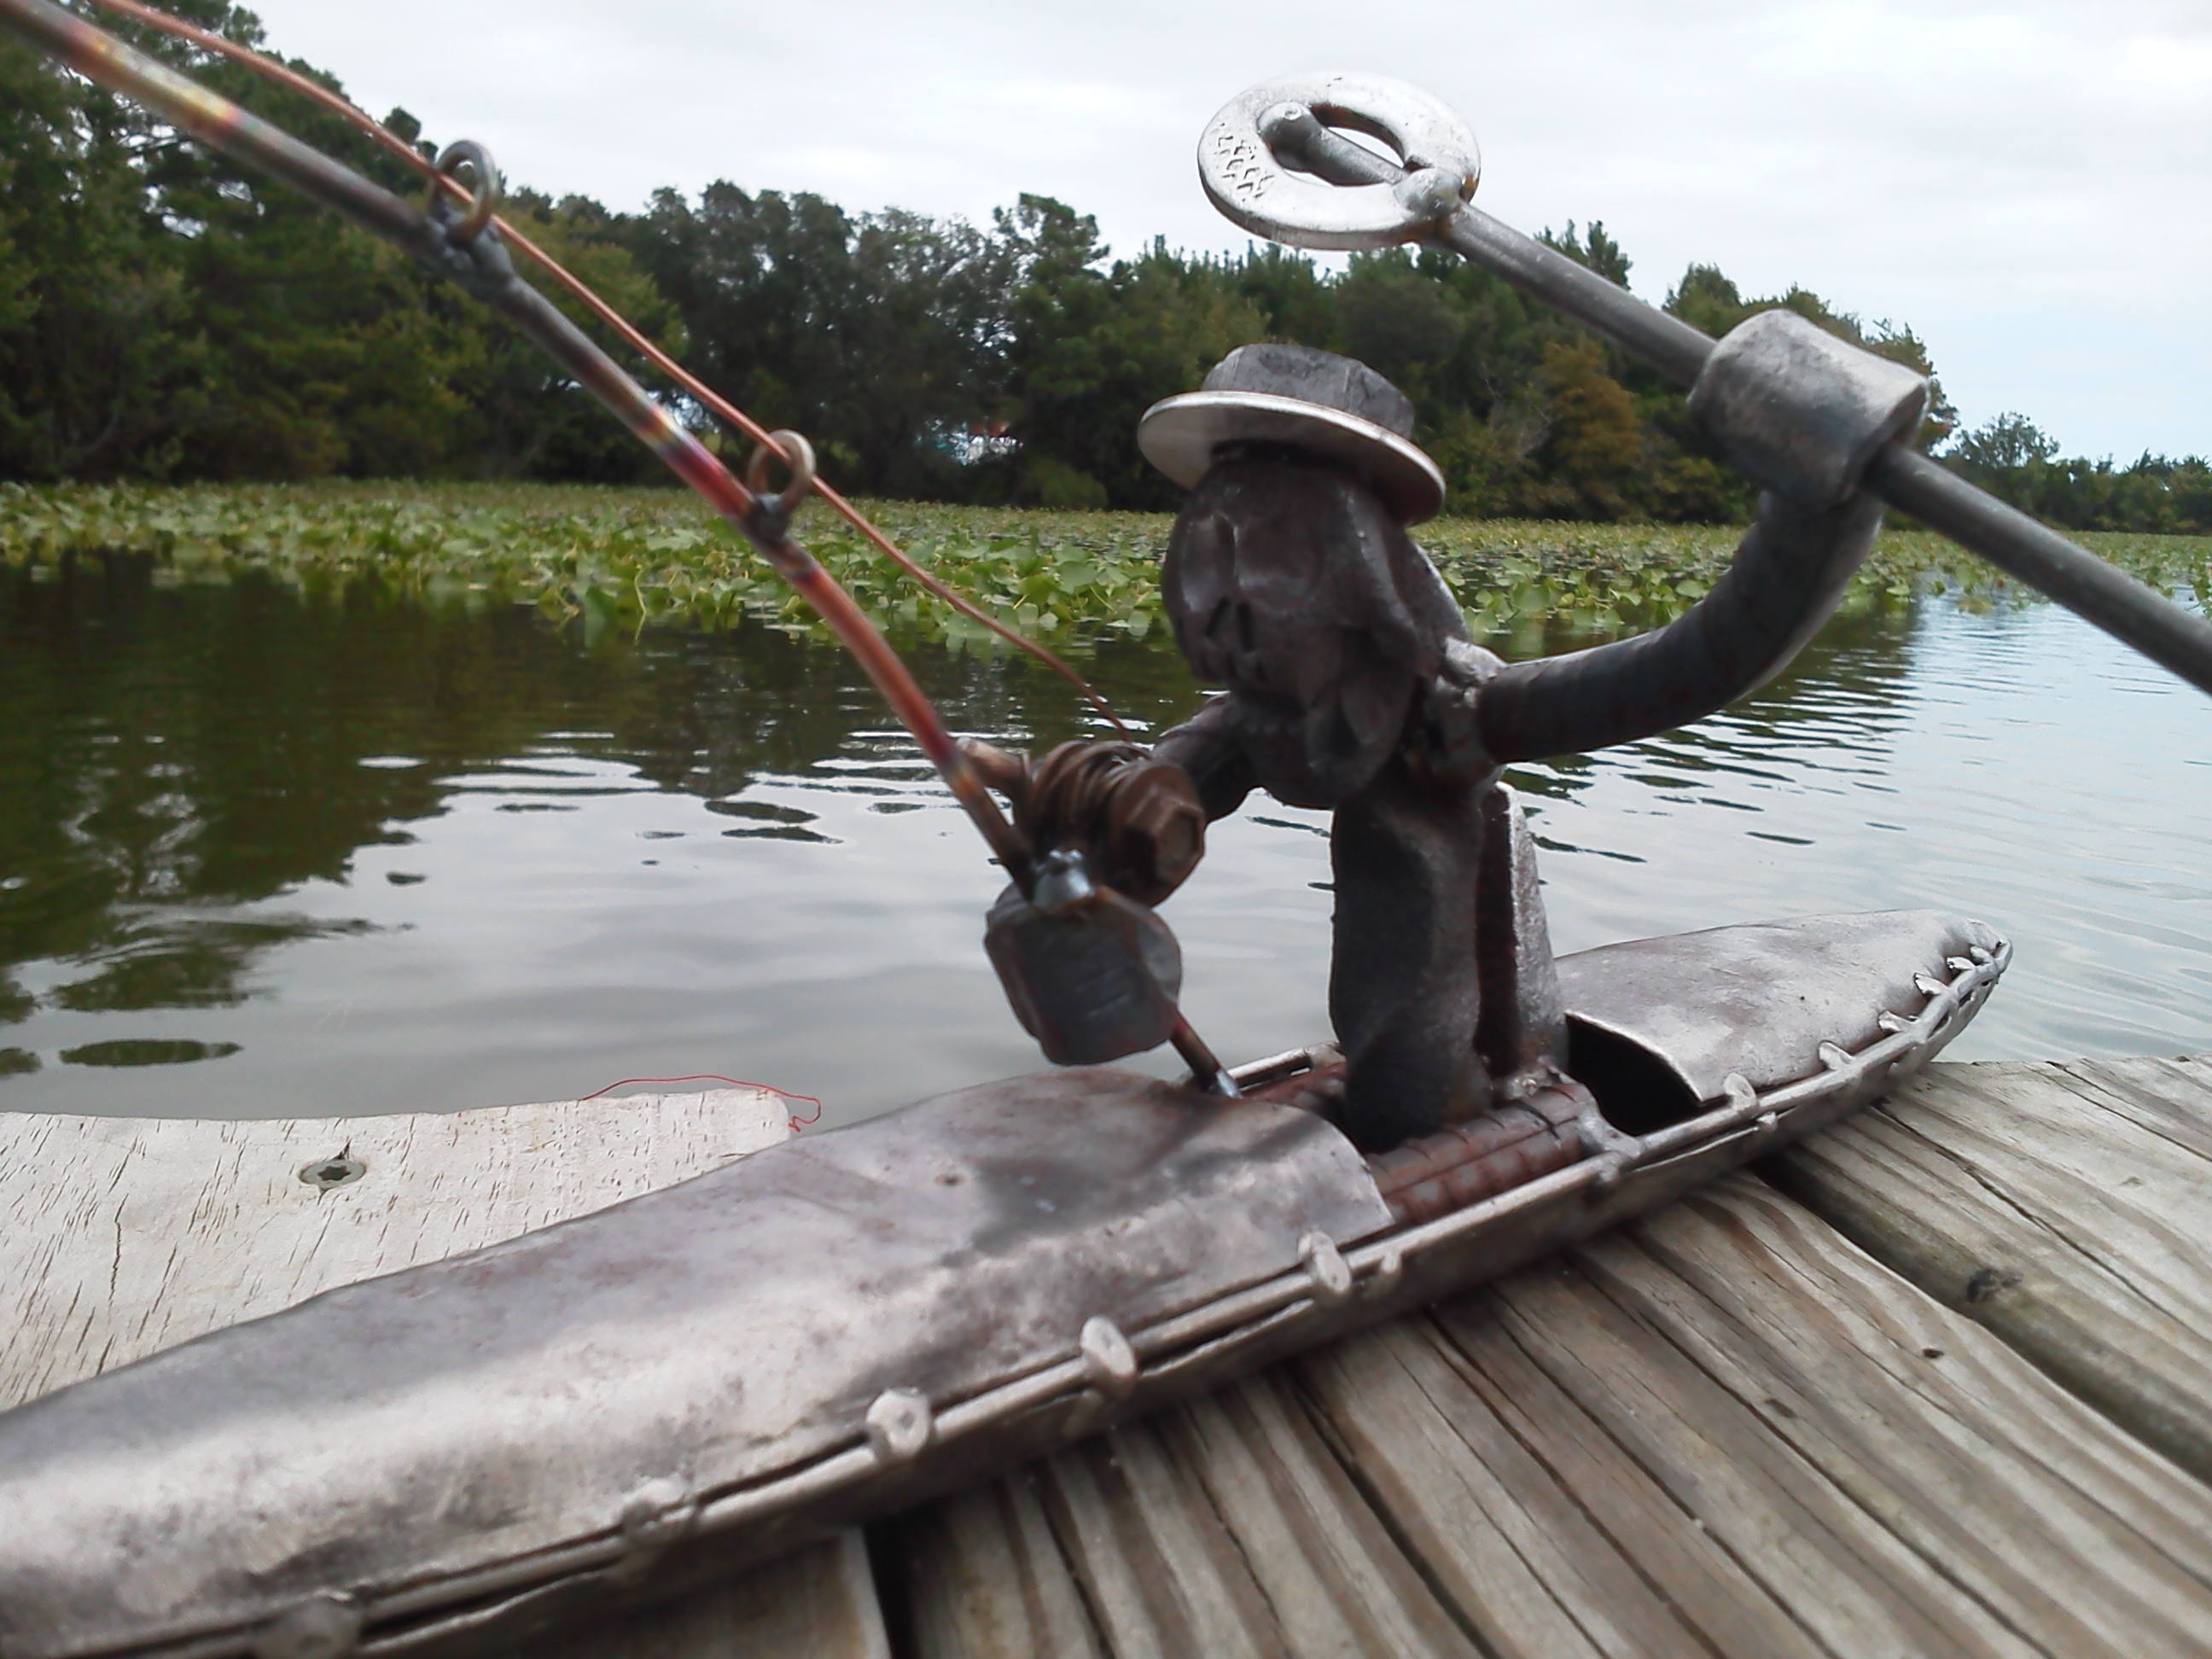 Railroad Spike Man went Kayak Fishing